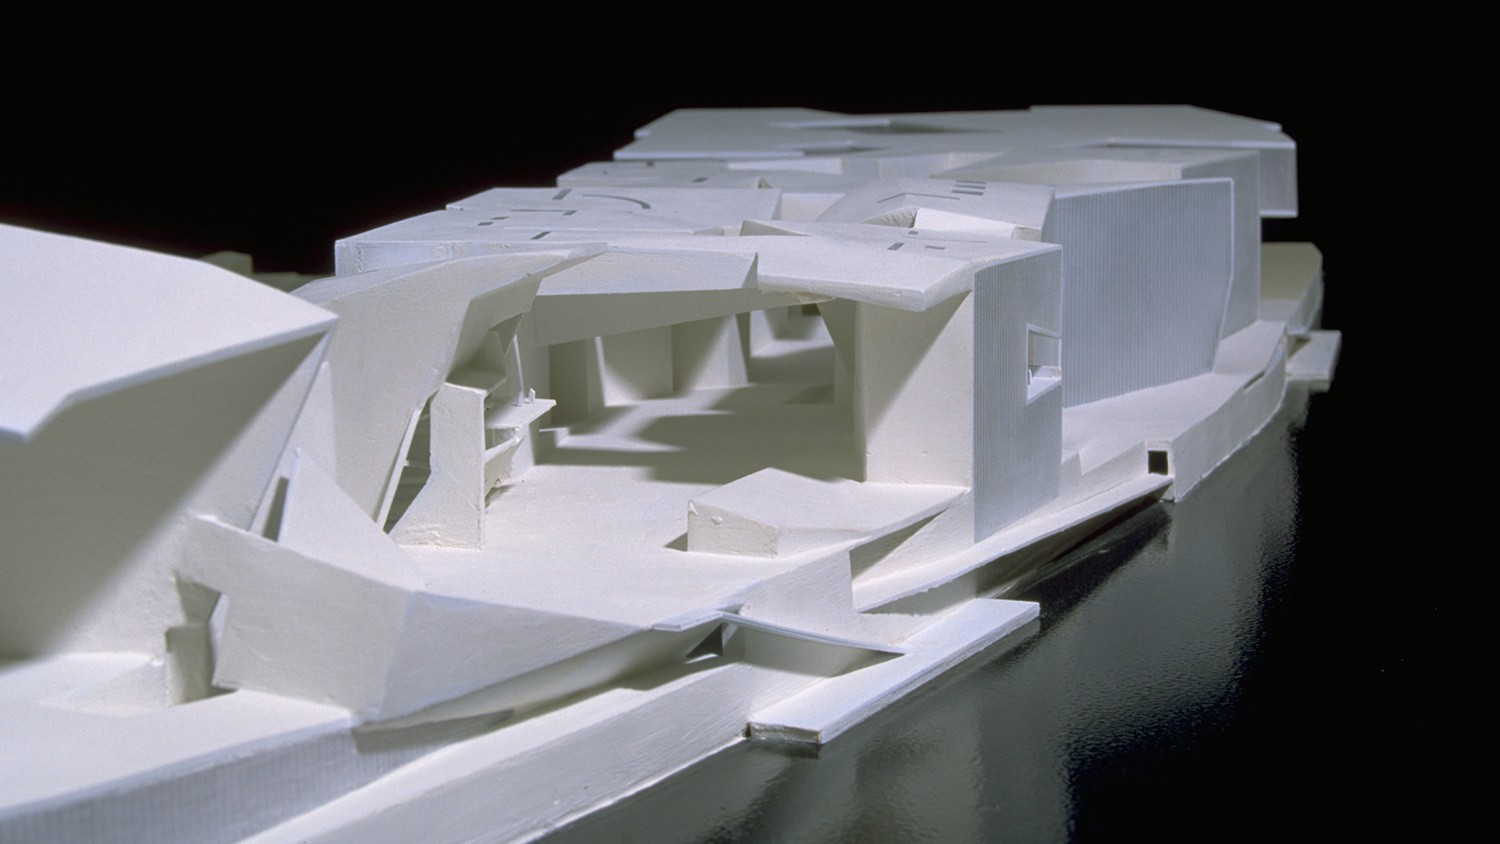 https://s3.us-east-2.amazonaws.com/steven-holl/uploads/projects/project-images/StevenHollArchitects_IleSeguin_front_WH.jpg